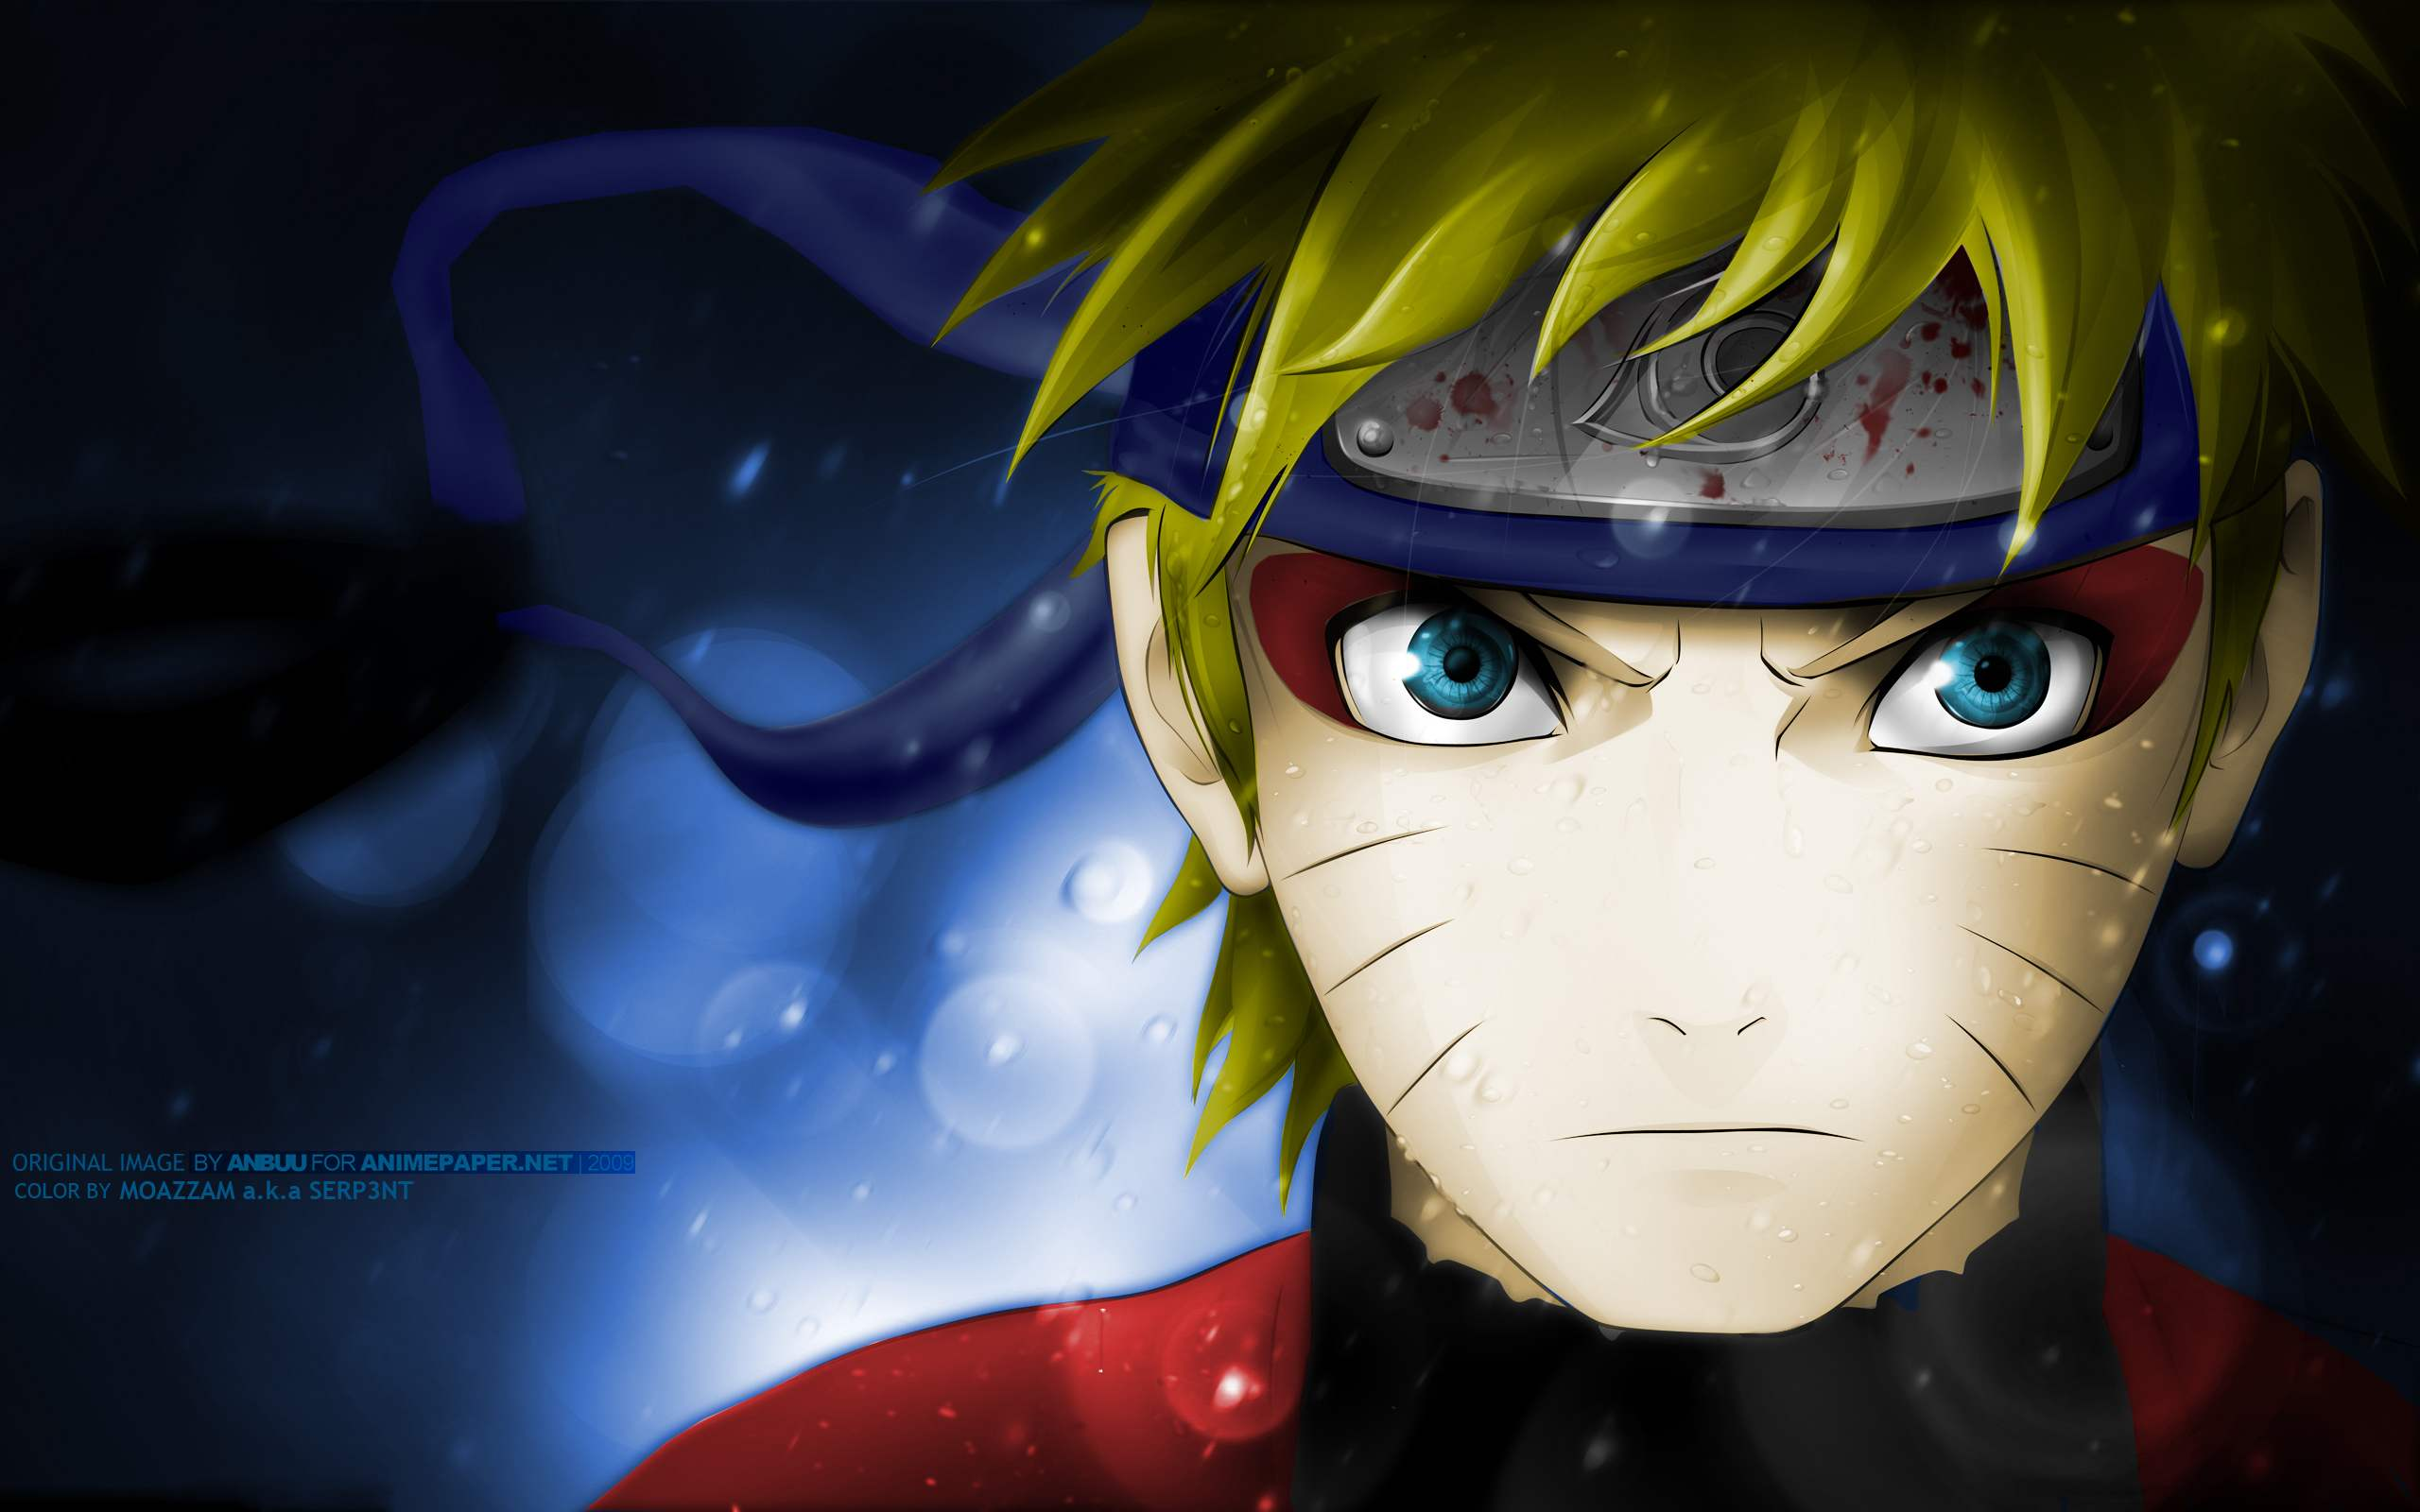 naruto shippuden desktop wallpaper free desktop wallpaper